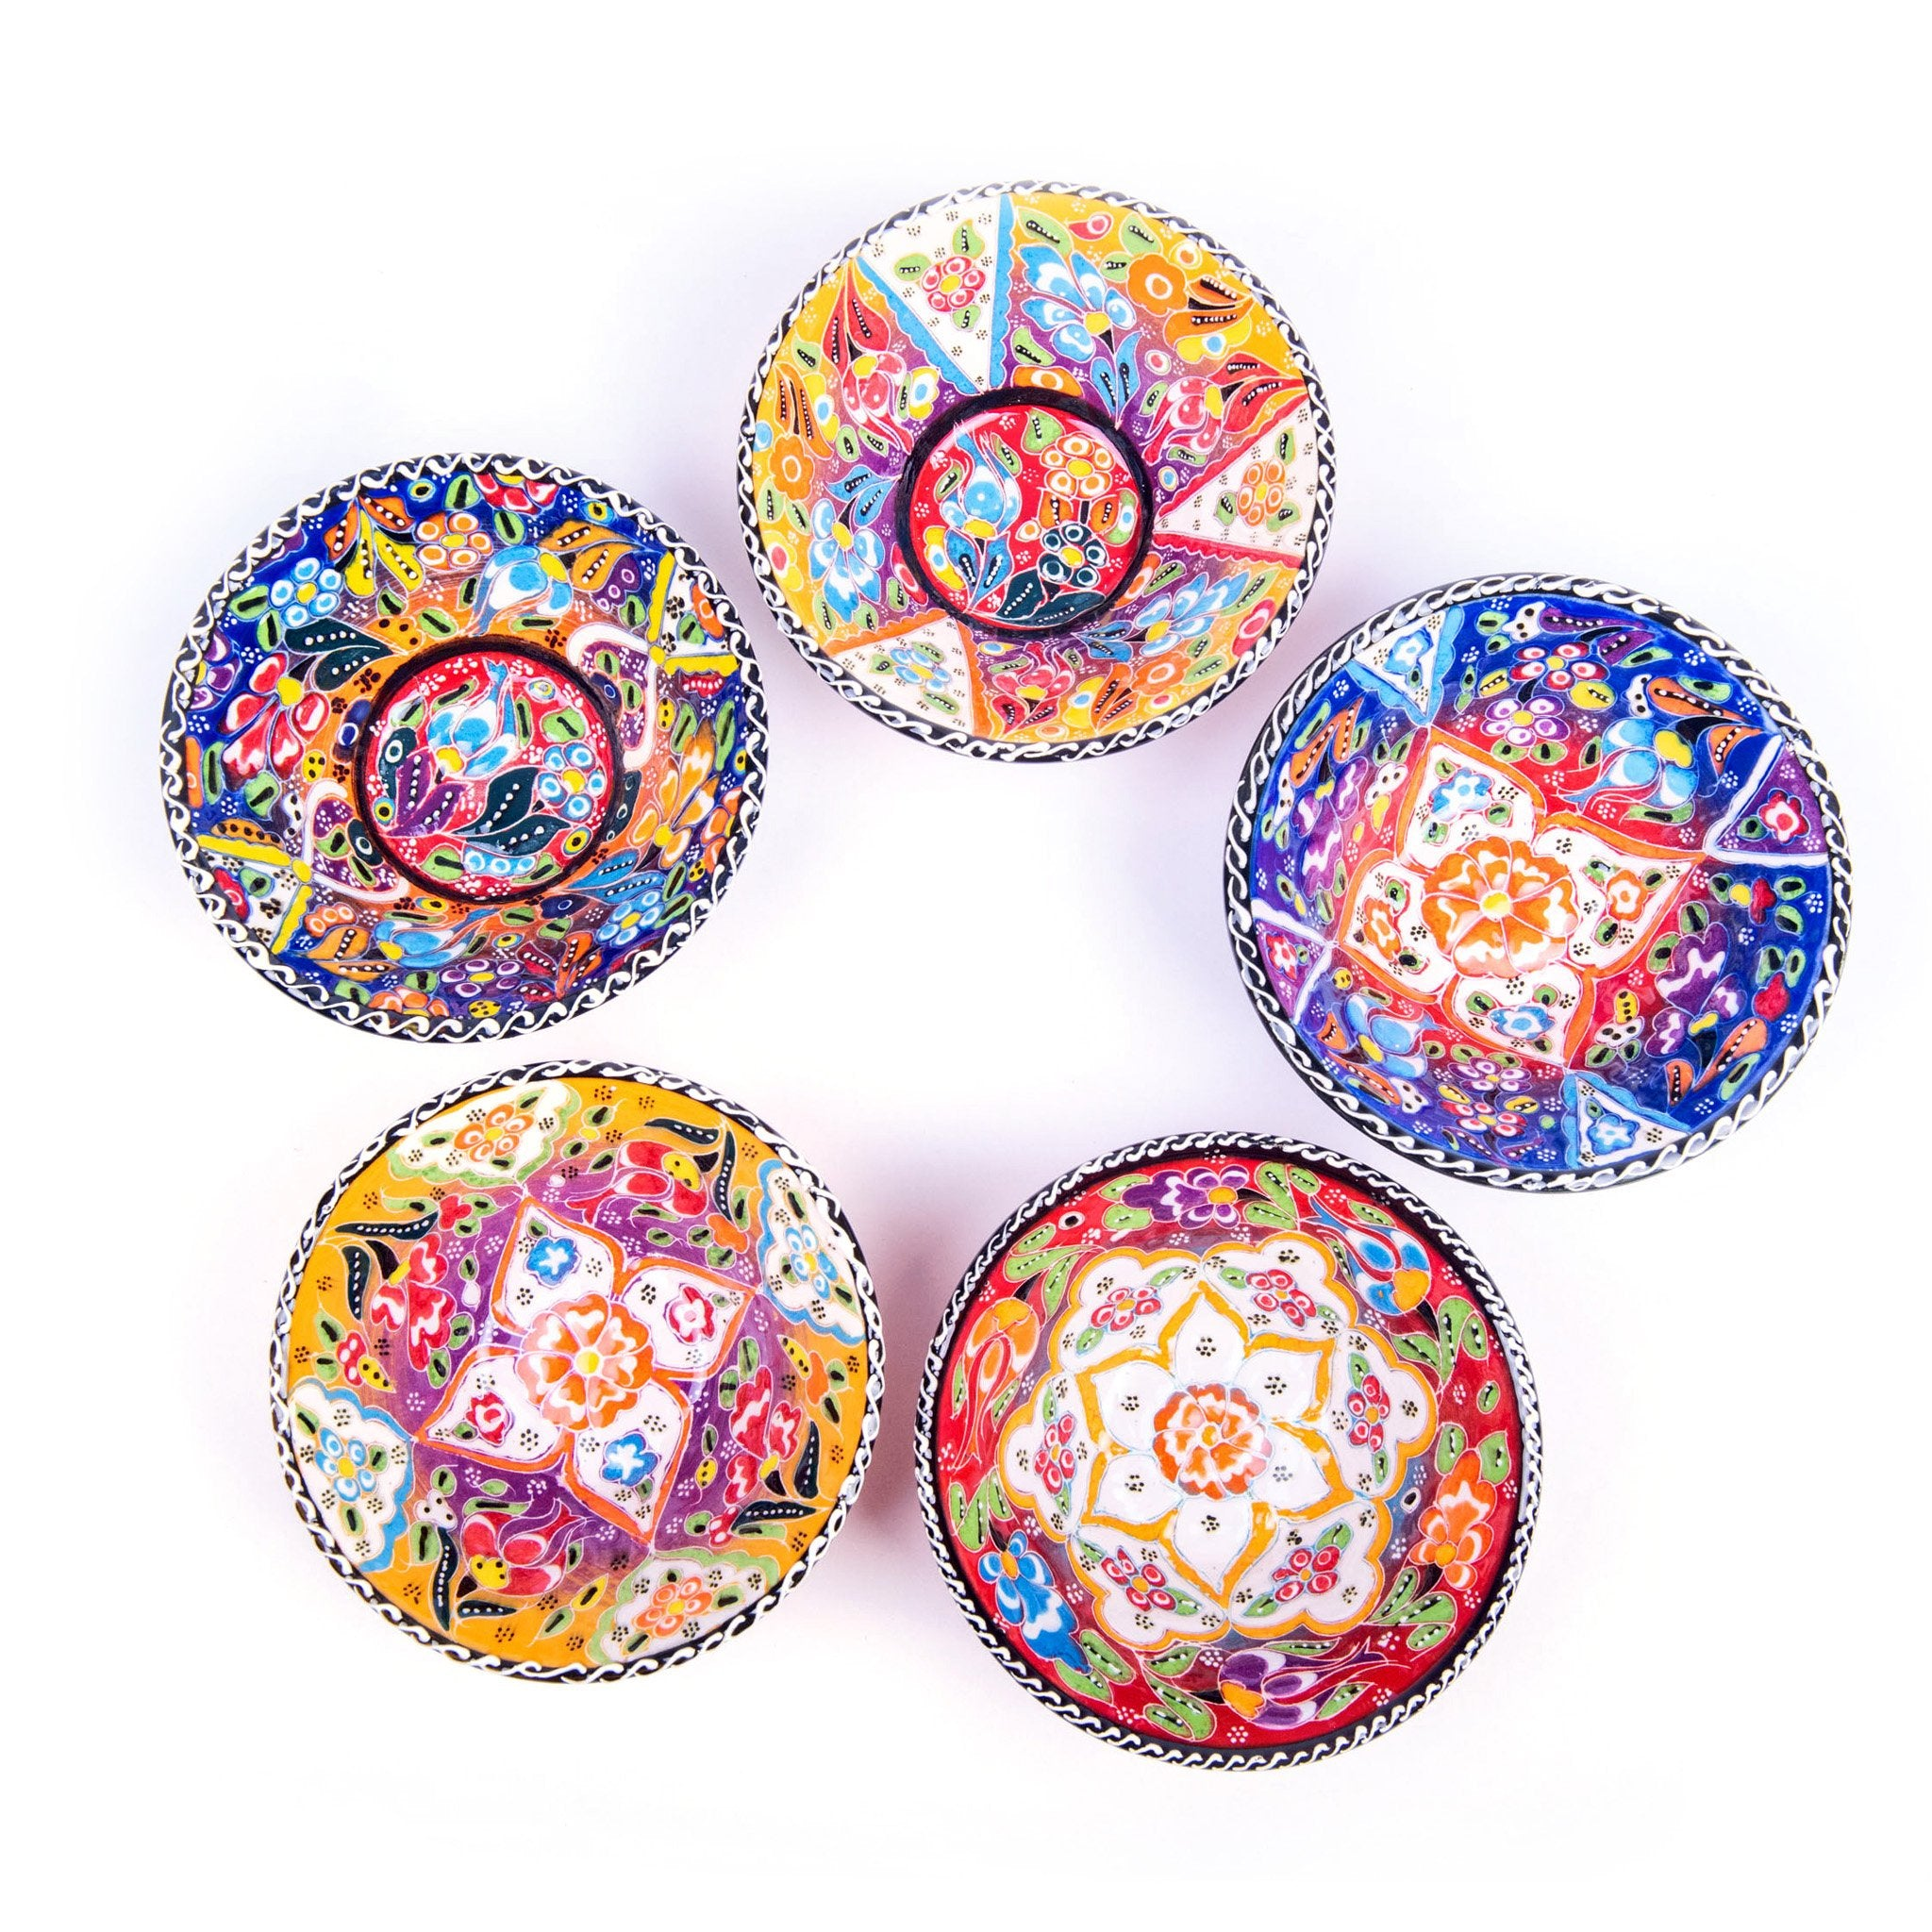 Turkish Ceramic Kutahya Design Handmade V Flat Bowl Set Of Five - 12 cm (4.8'')